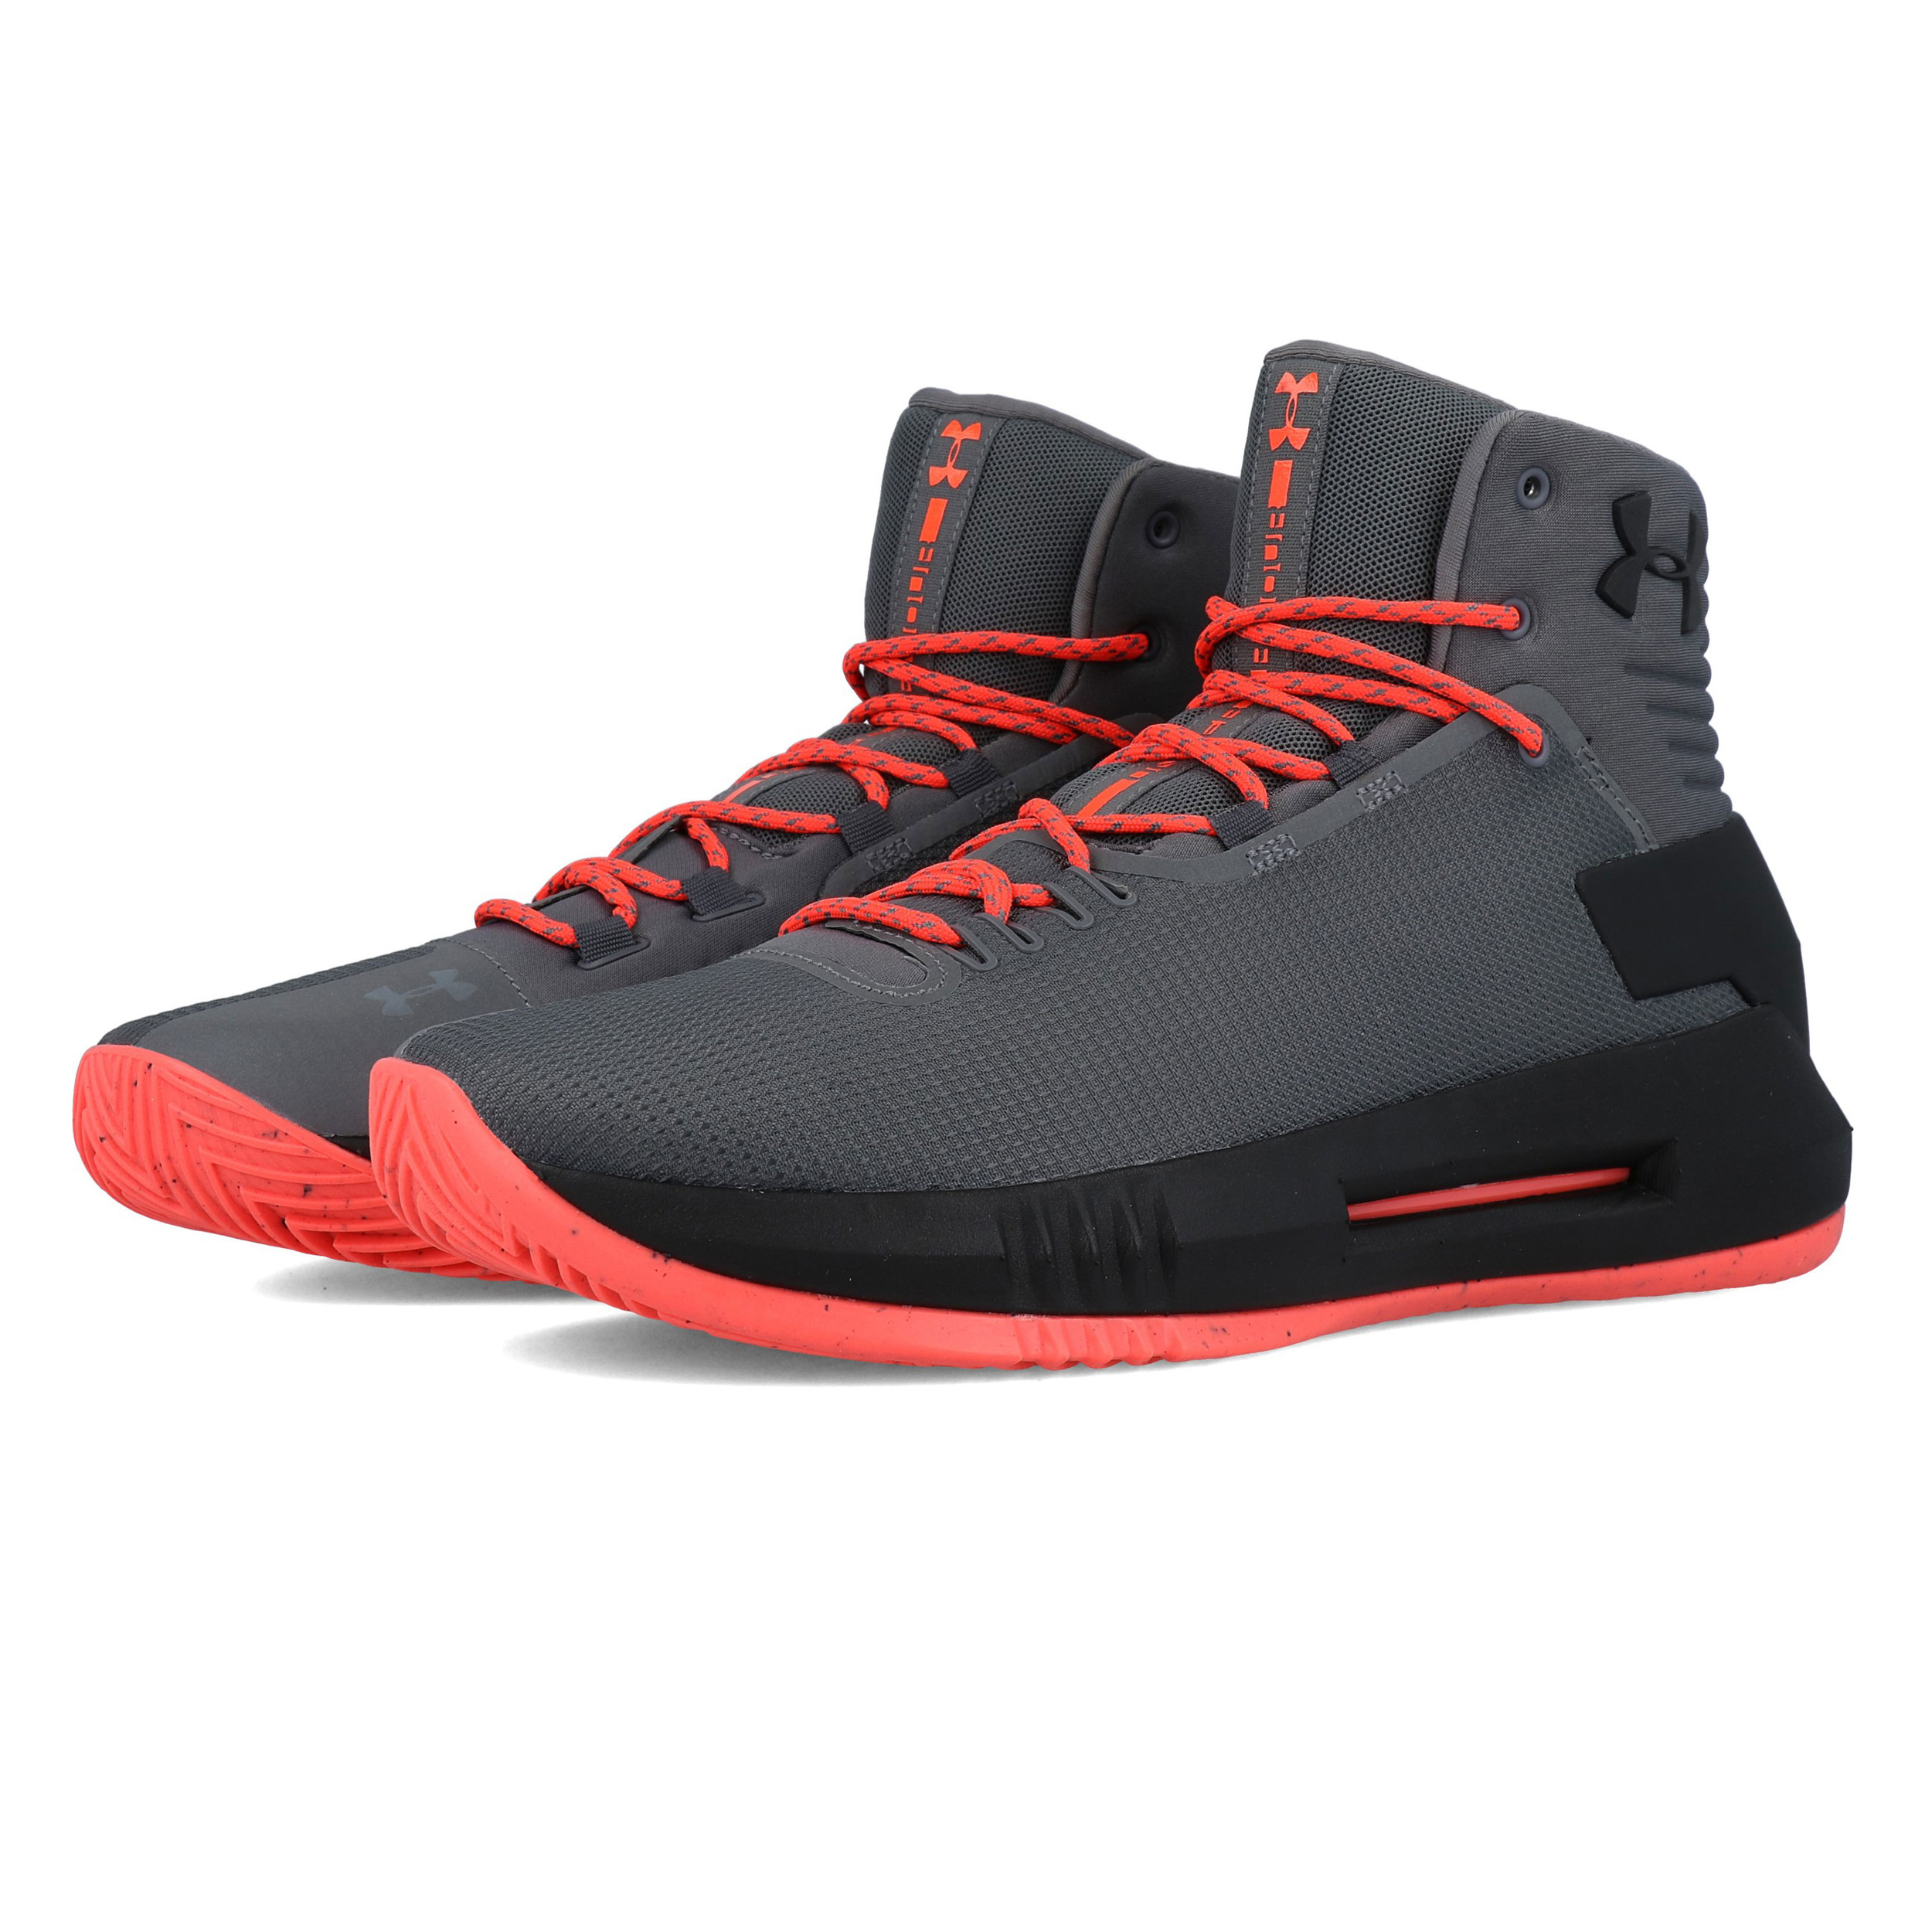 fed6866cc5 Details about Under Armour Mens Drive 4 Basketball Shoes Grey Sports  Breathable Lightweight